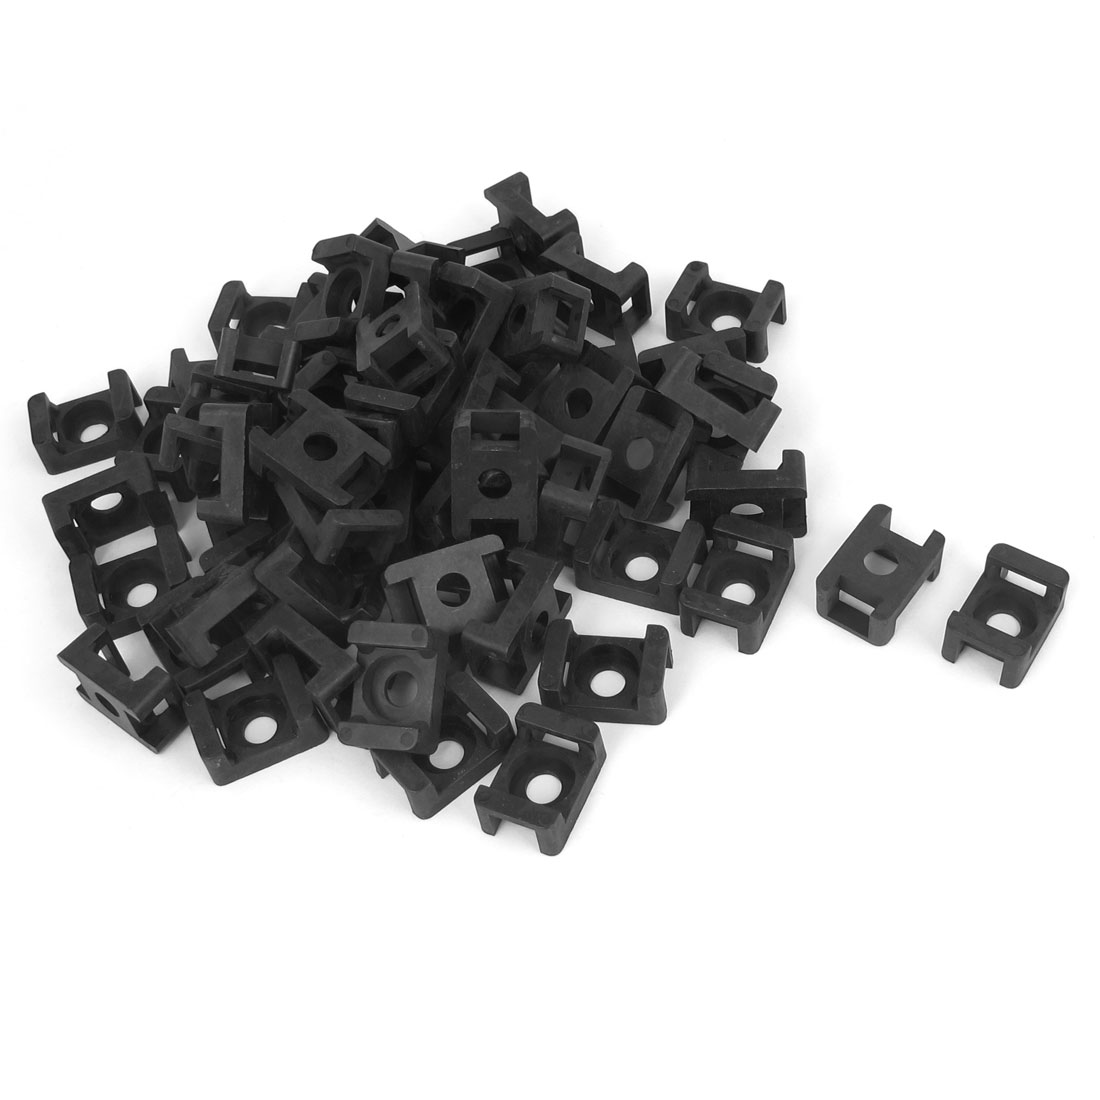 90 Pcs Plastic Wire Cable Tie Screw Fit Saddle Mountings 9mm Max Width